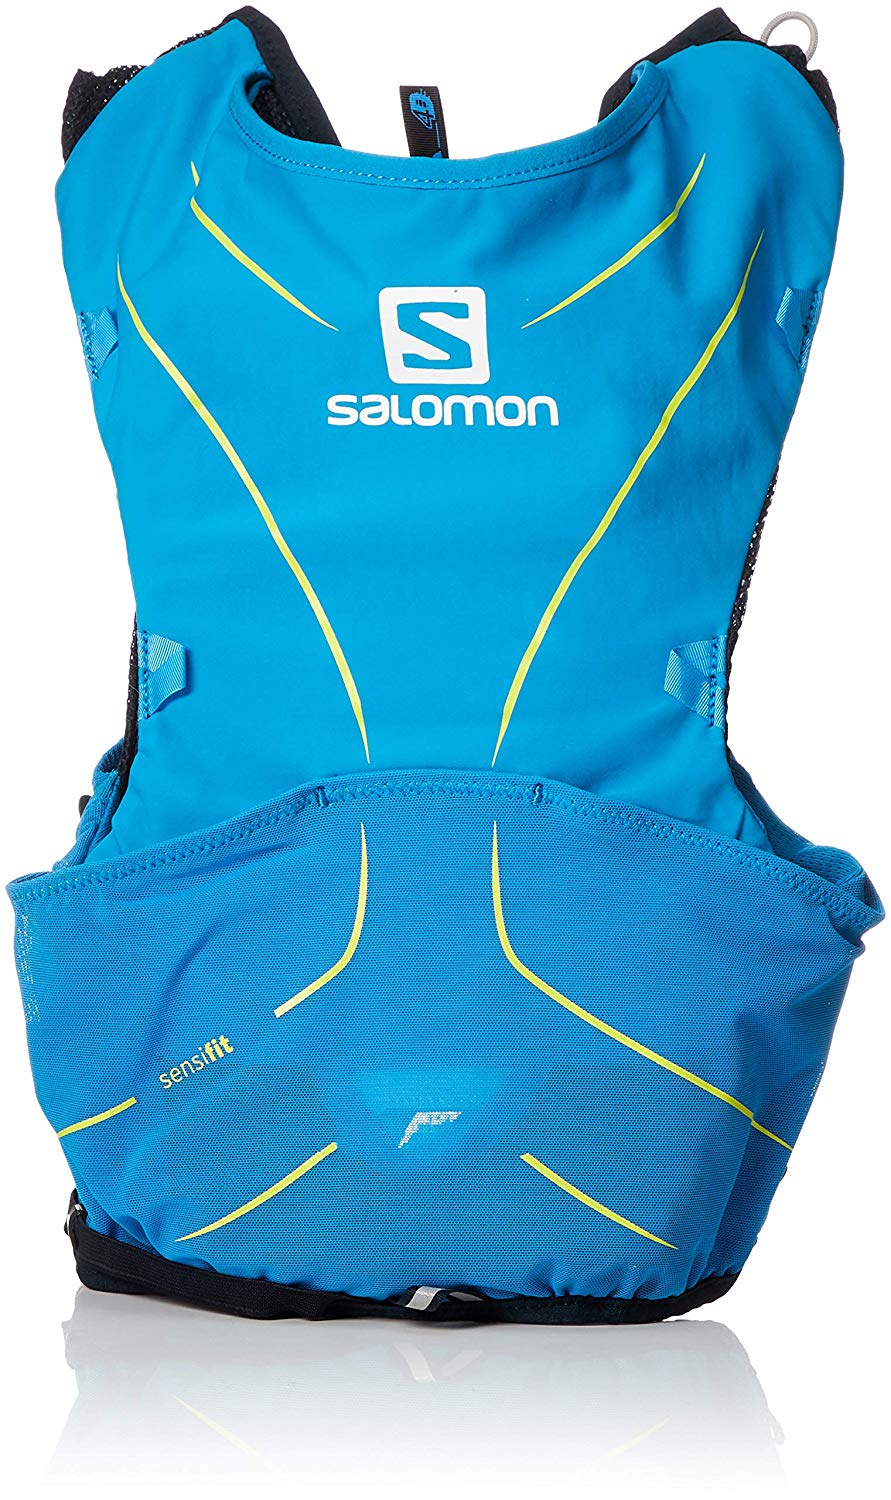 Salomon Trinkrucksack amazon